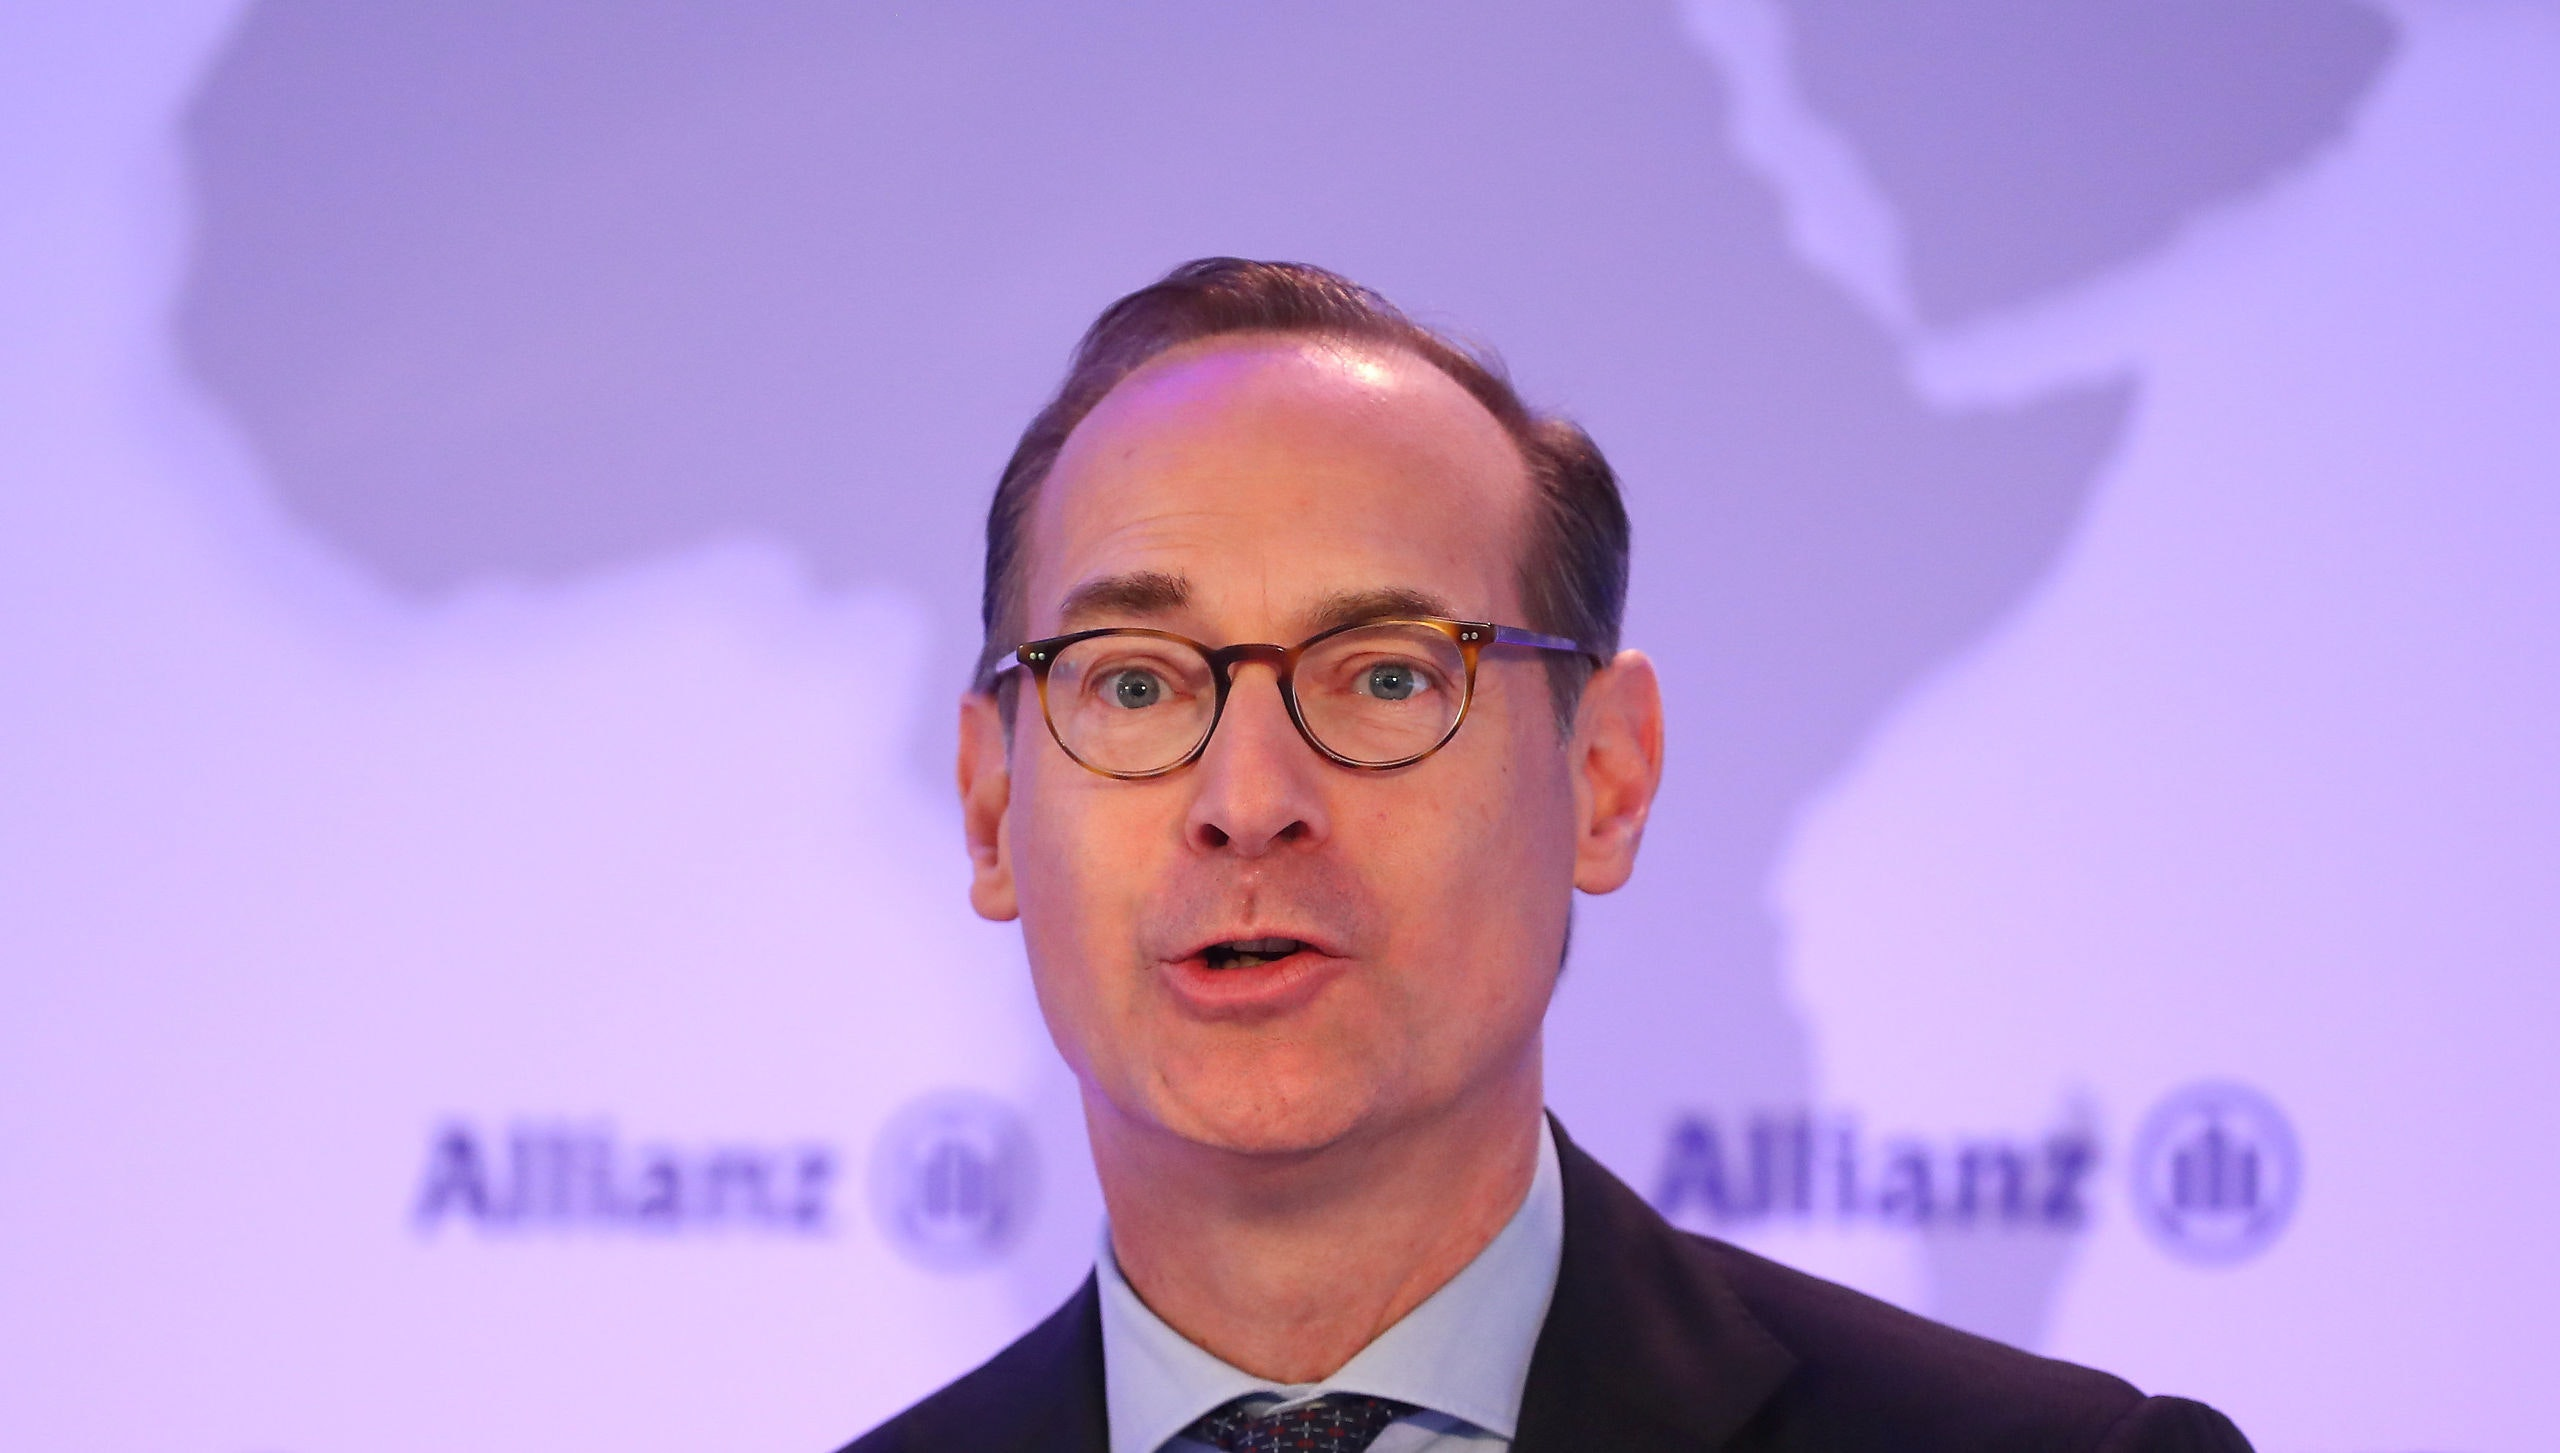 Oliver Baete, Chief Executive Officer of Europe's biggest insurer Allianz SE attends the company's annual news conference in Munich, Germany, February 15, 2019.   REUTERS/Michael Dalder